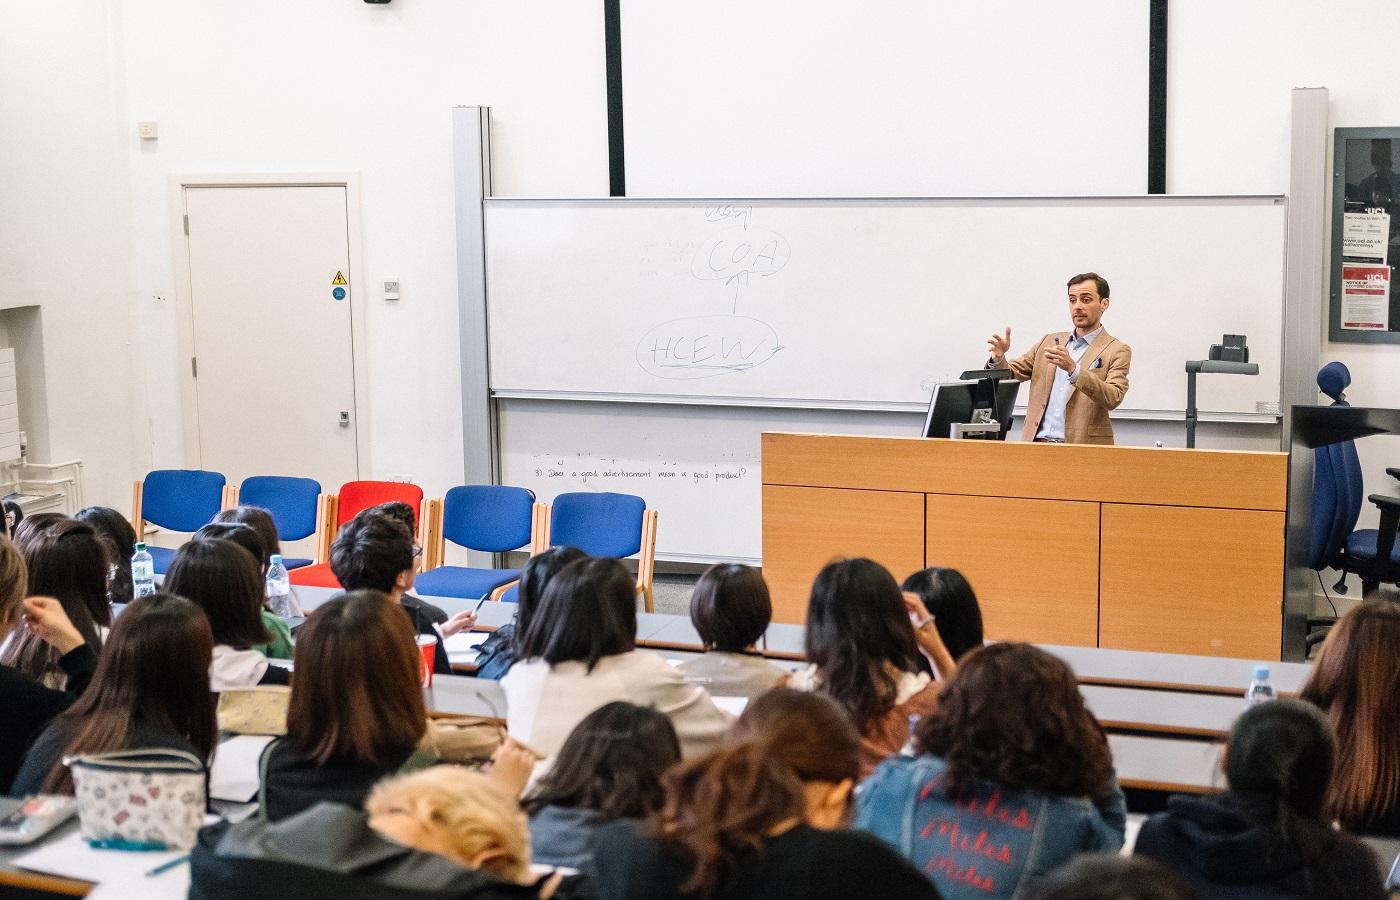 UCL Summer English Course students in a lecture